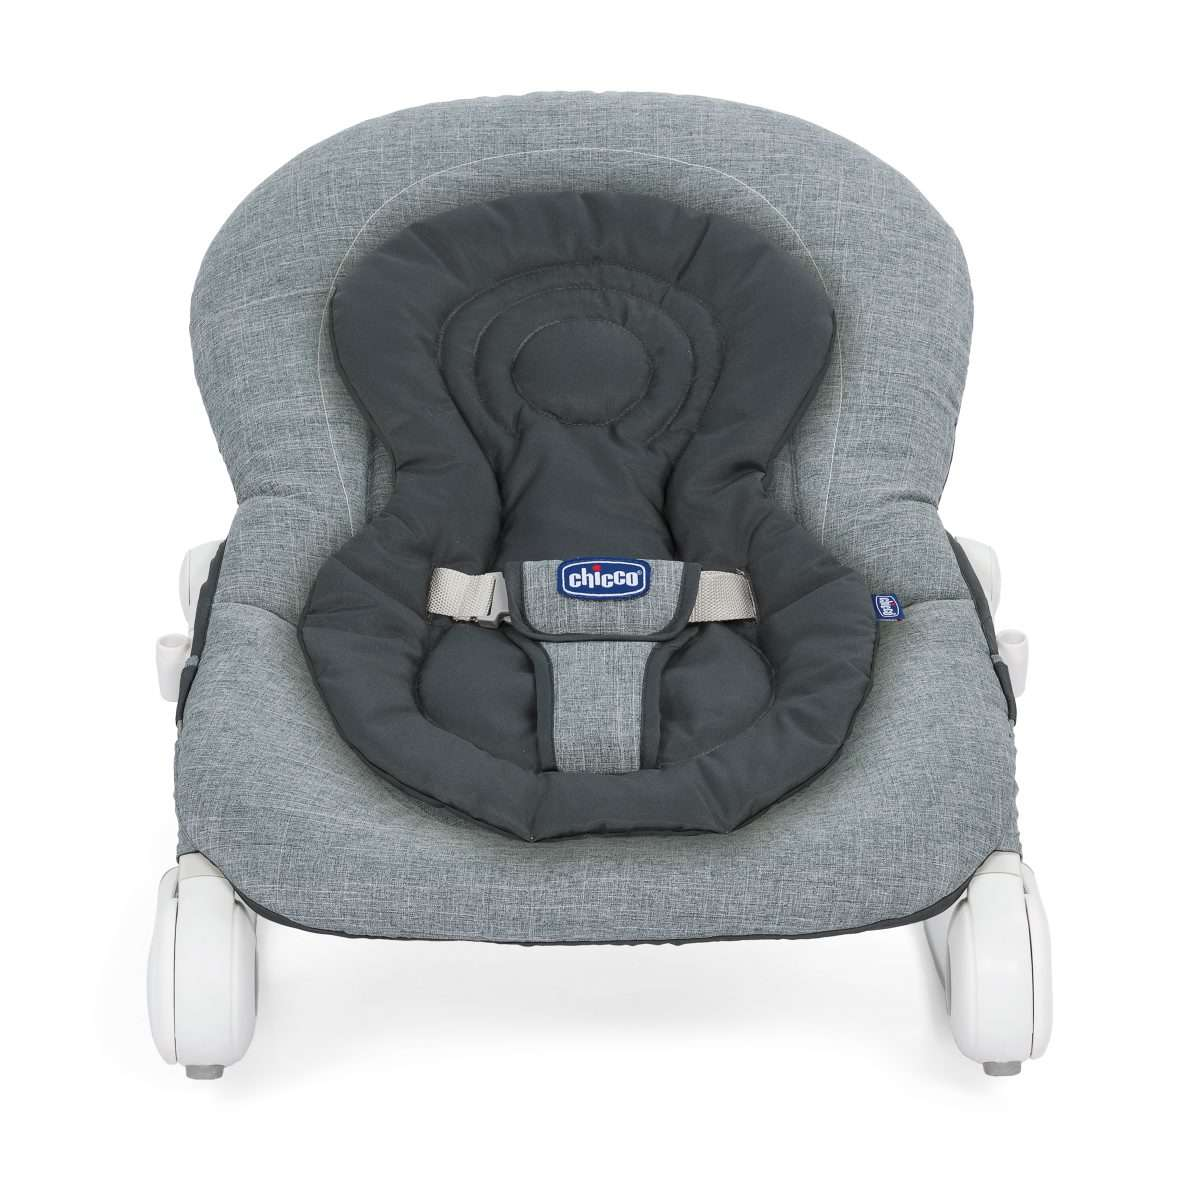 boppy baby chair uk small upholstered chairs hoopla 39 dark grey sleeptime and relaxation chicco